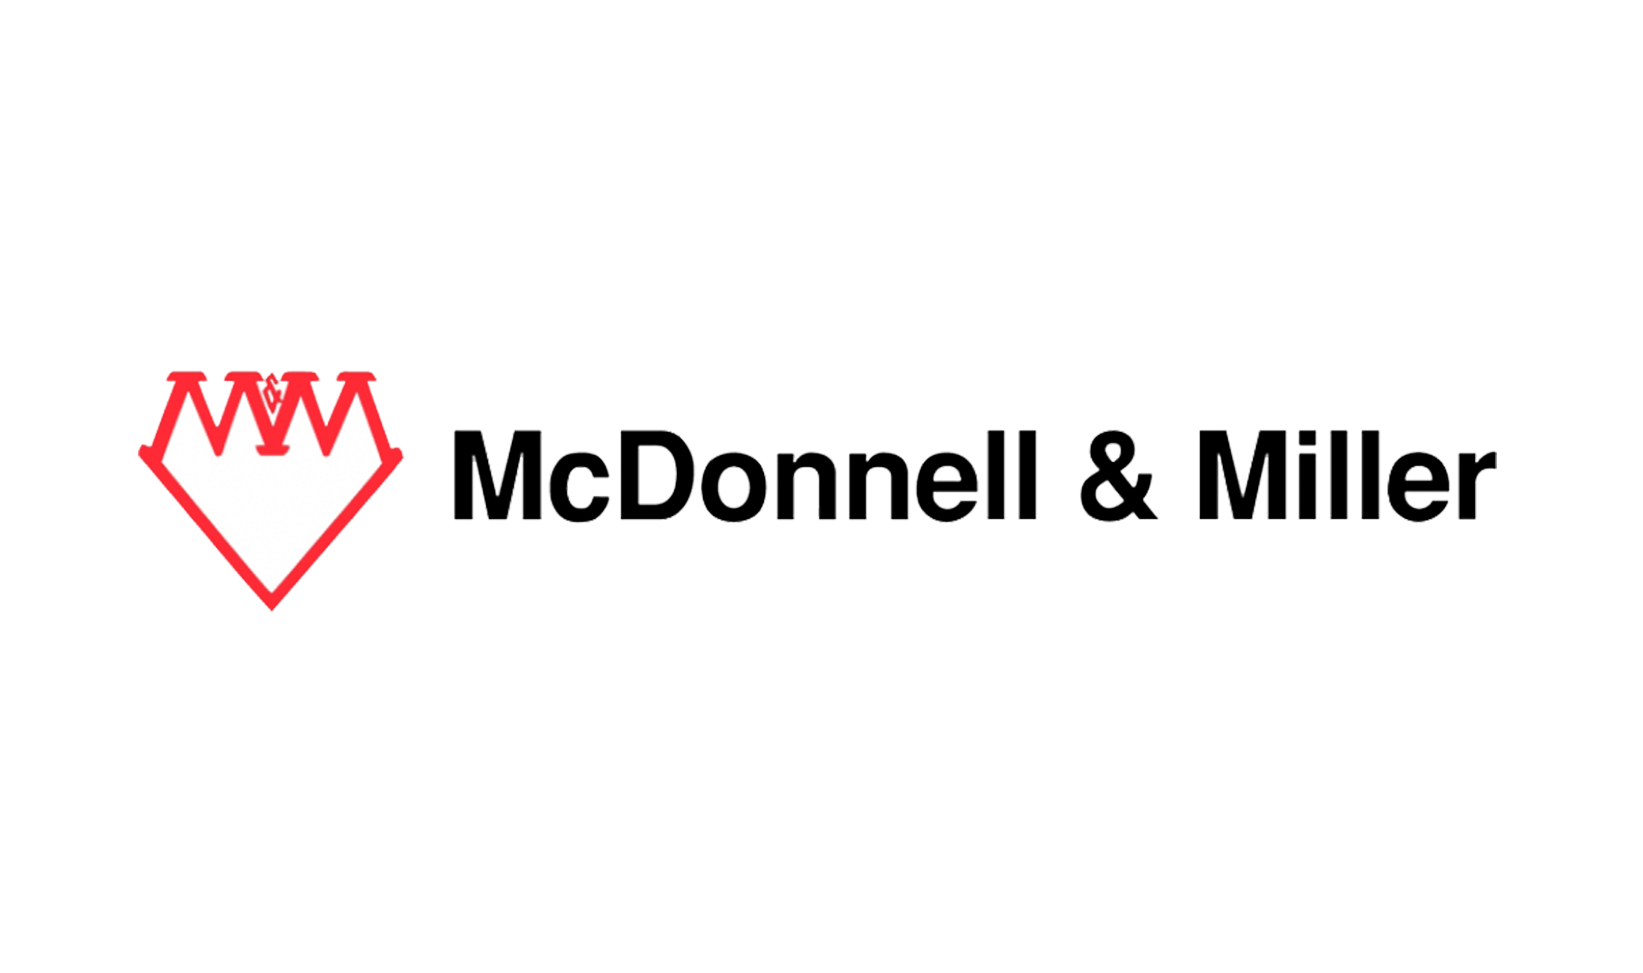 McDonnell_&_Mille